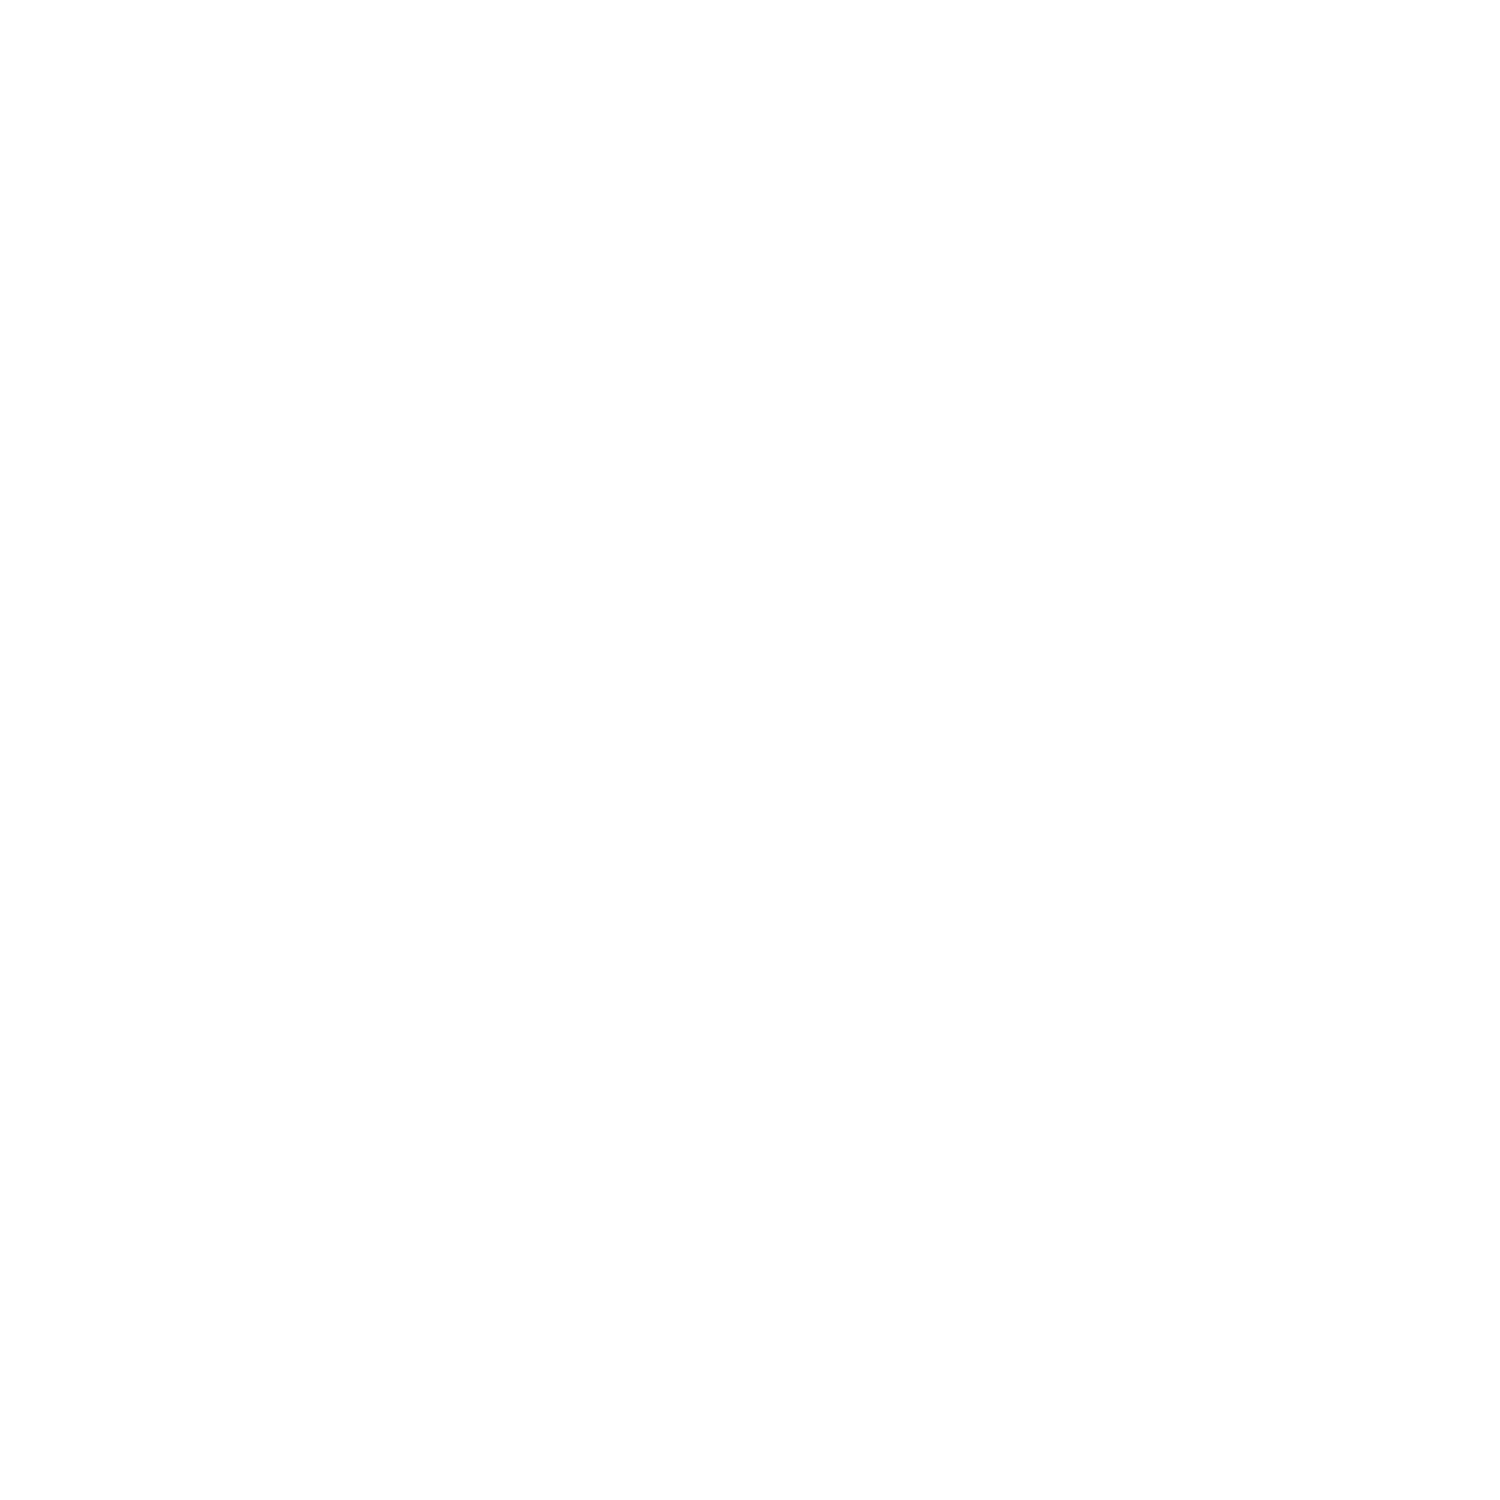 Winum All Mgmt